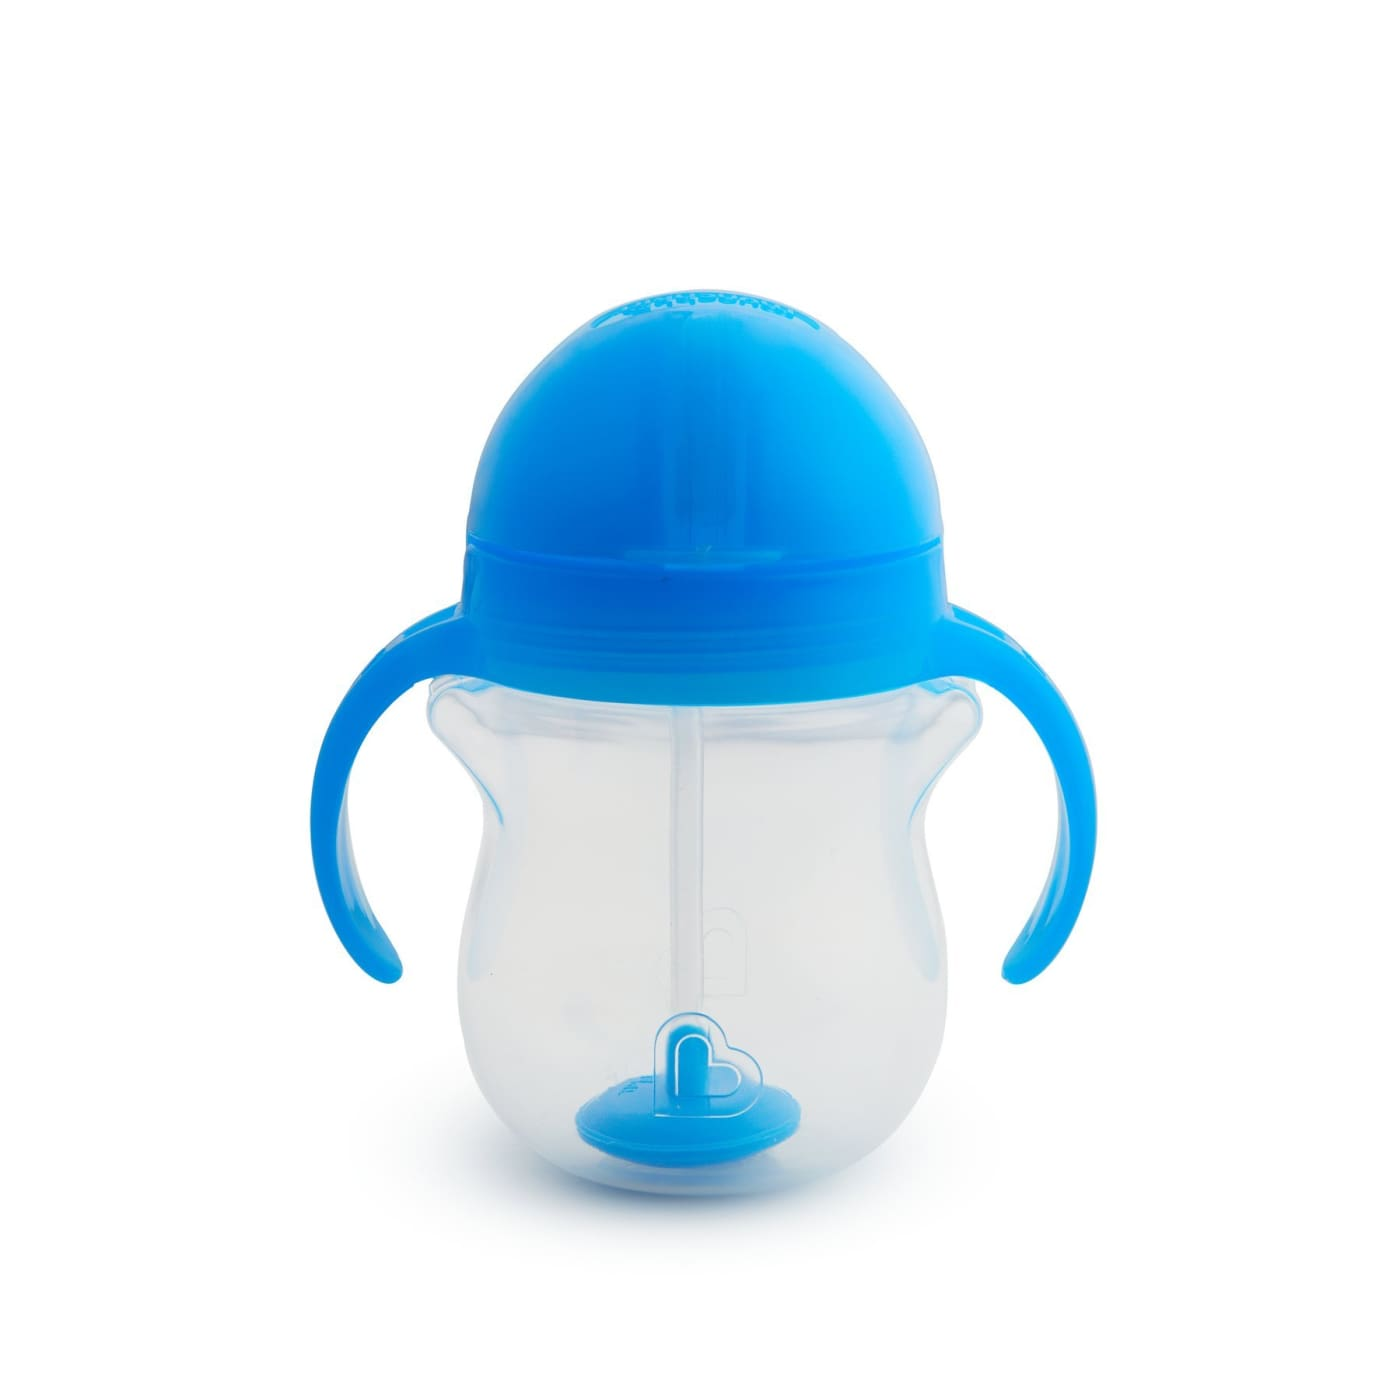 Munchkin Click Lock Weighted Flexi-Straw Cup - Blue - NURSING & FEEDING - CUPS/DRINK BOTTLES